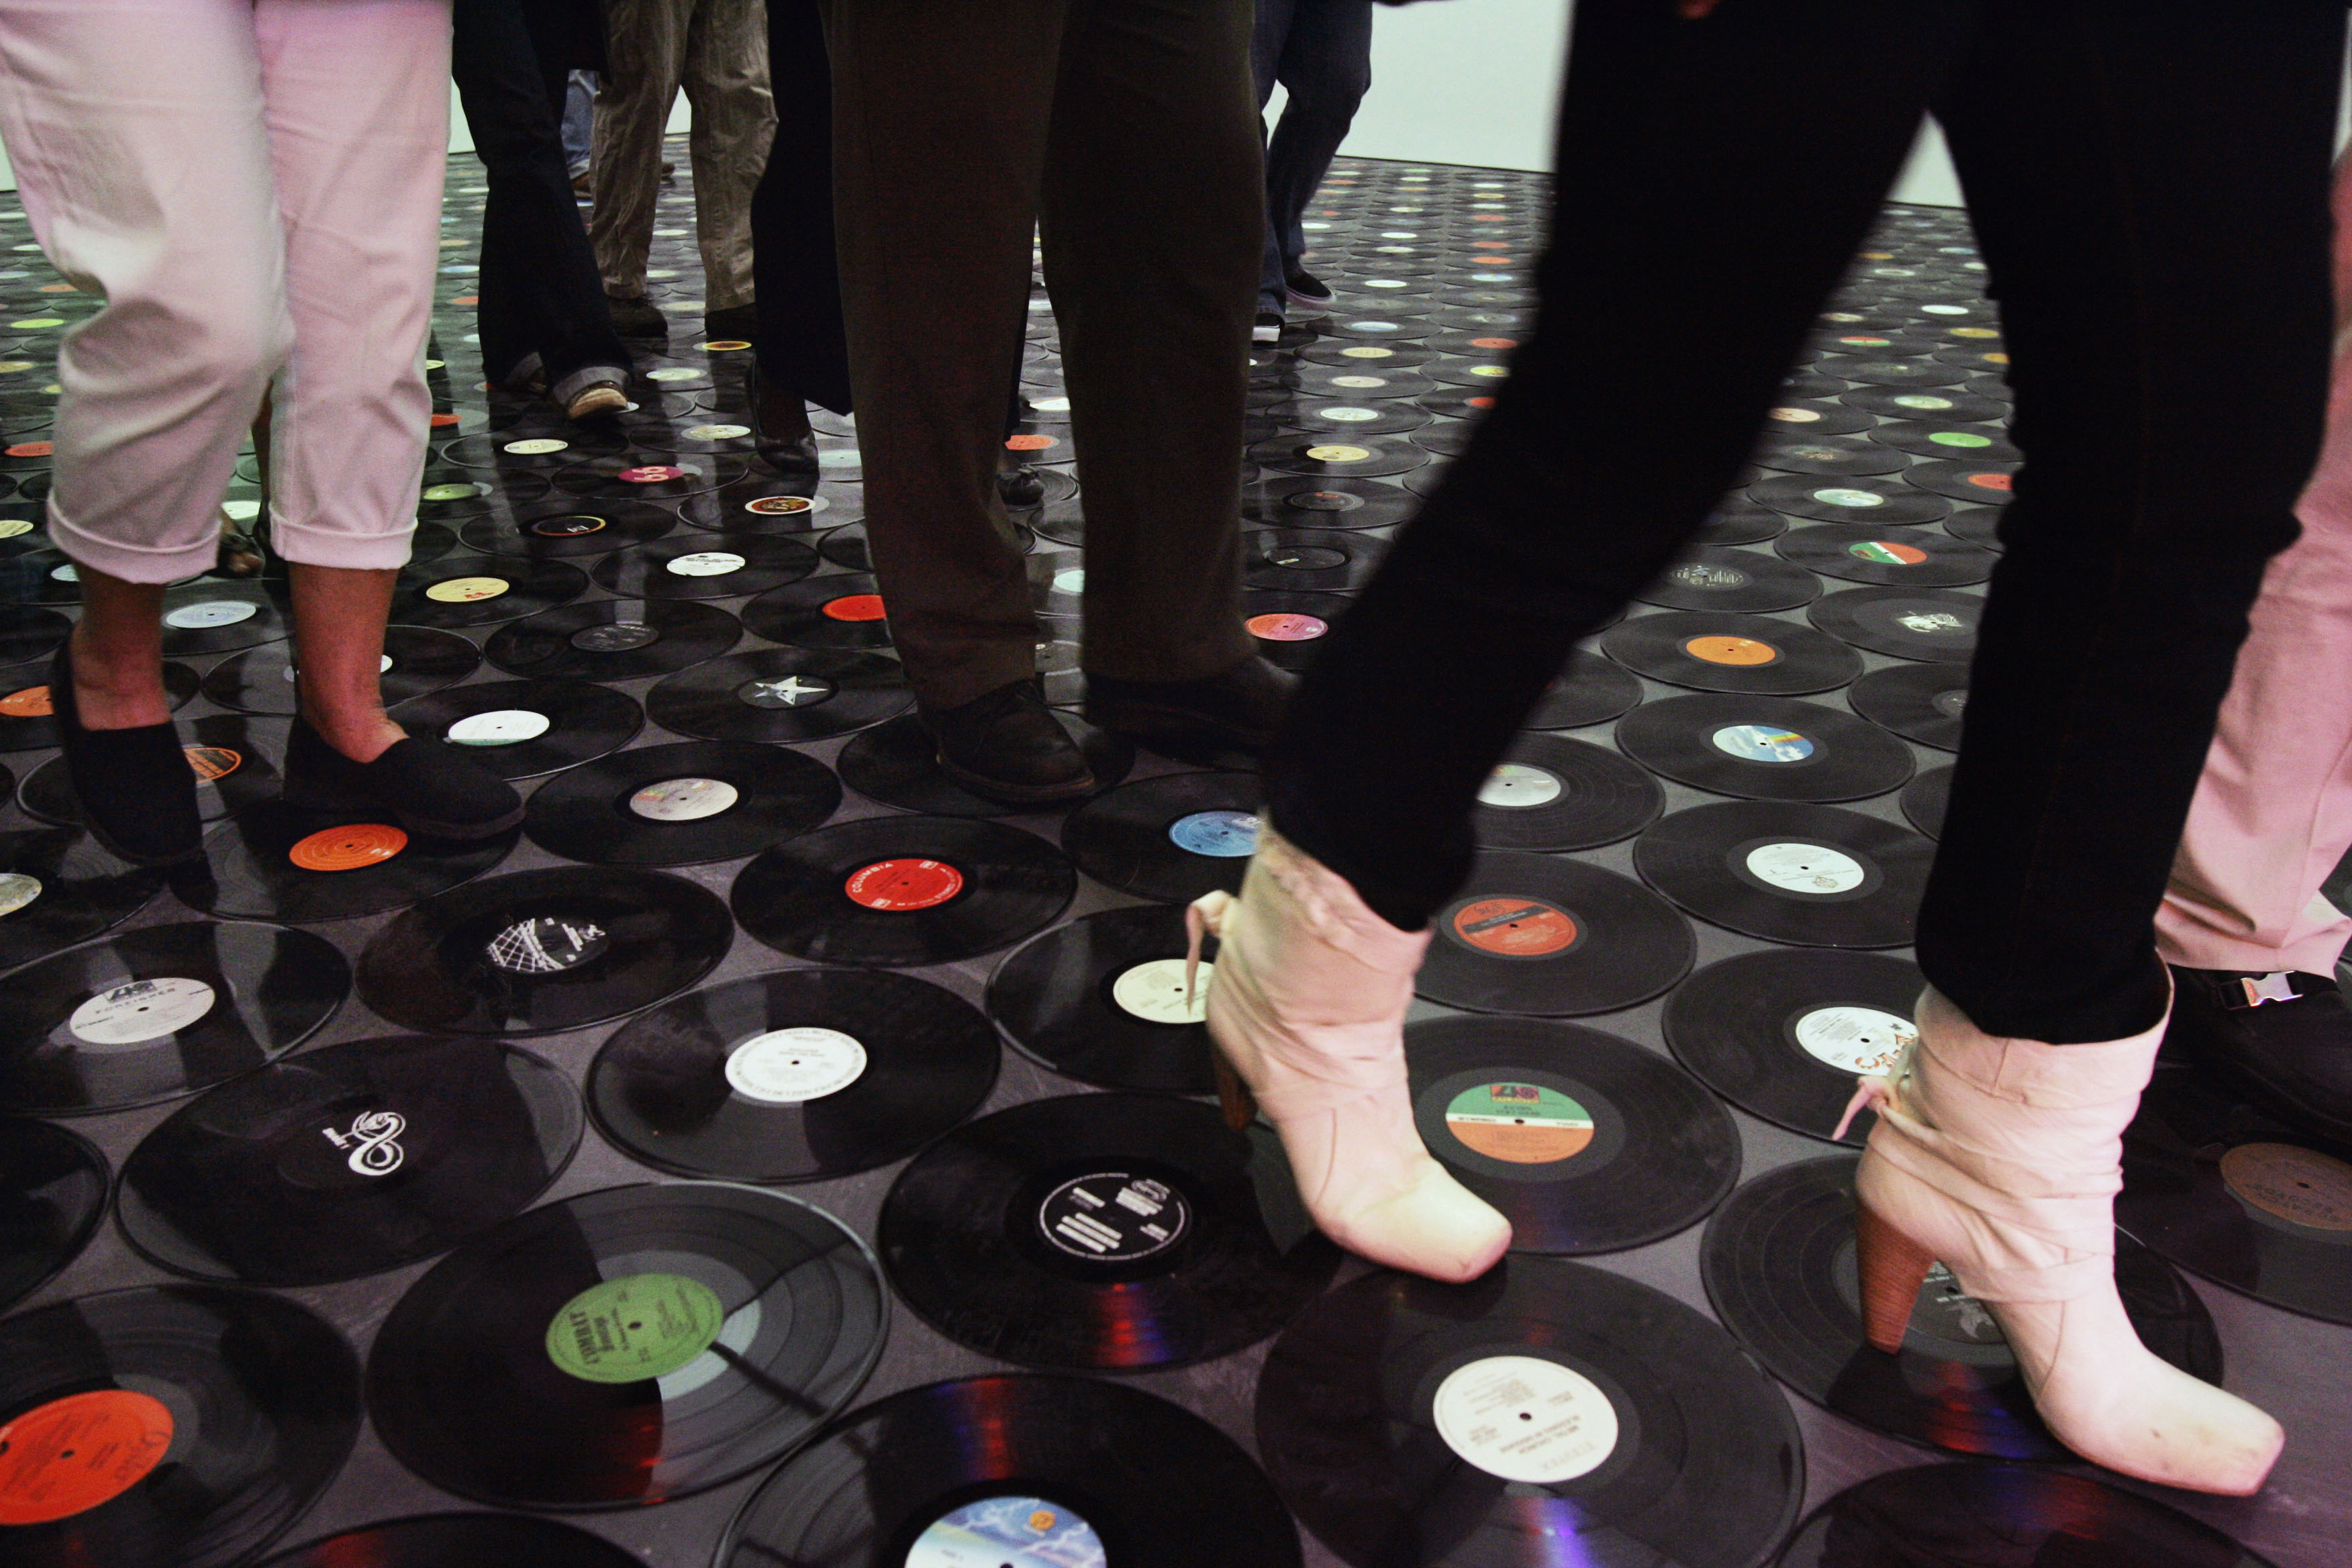 "Visitors to the Museum of Contemporary Art walk over a floor created by artist Christian Marclay made up of vinyl records Friday, Sept. 28, 2007, at the Museum of Contemporary Art in Chicago. The exhibit, part of ""Sympathy for the Devil: Art and Rock and Roll Since 1967,"" seeks to examine the ways that contemporary art and rock music have converged over the past 40 years, opens Saturday and runs through Jan. 6, 2008. (AP Photo/Charles Rex Arbogast)"